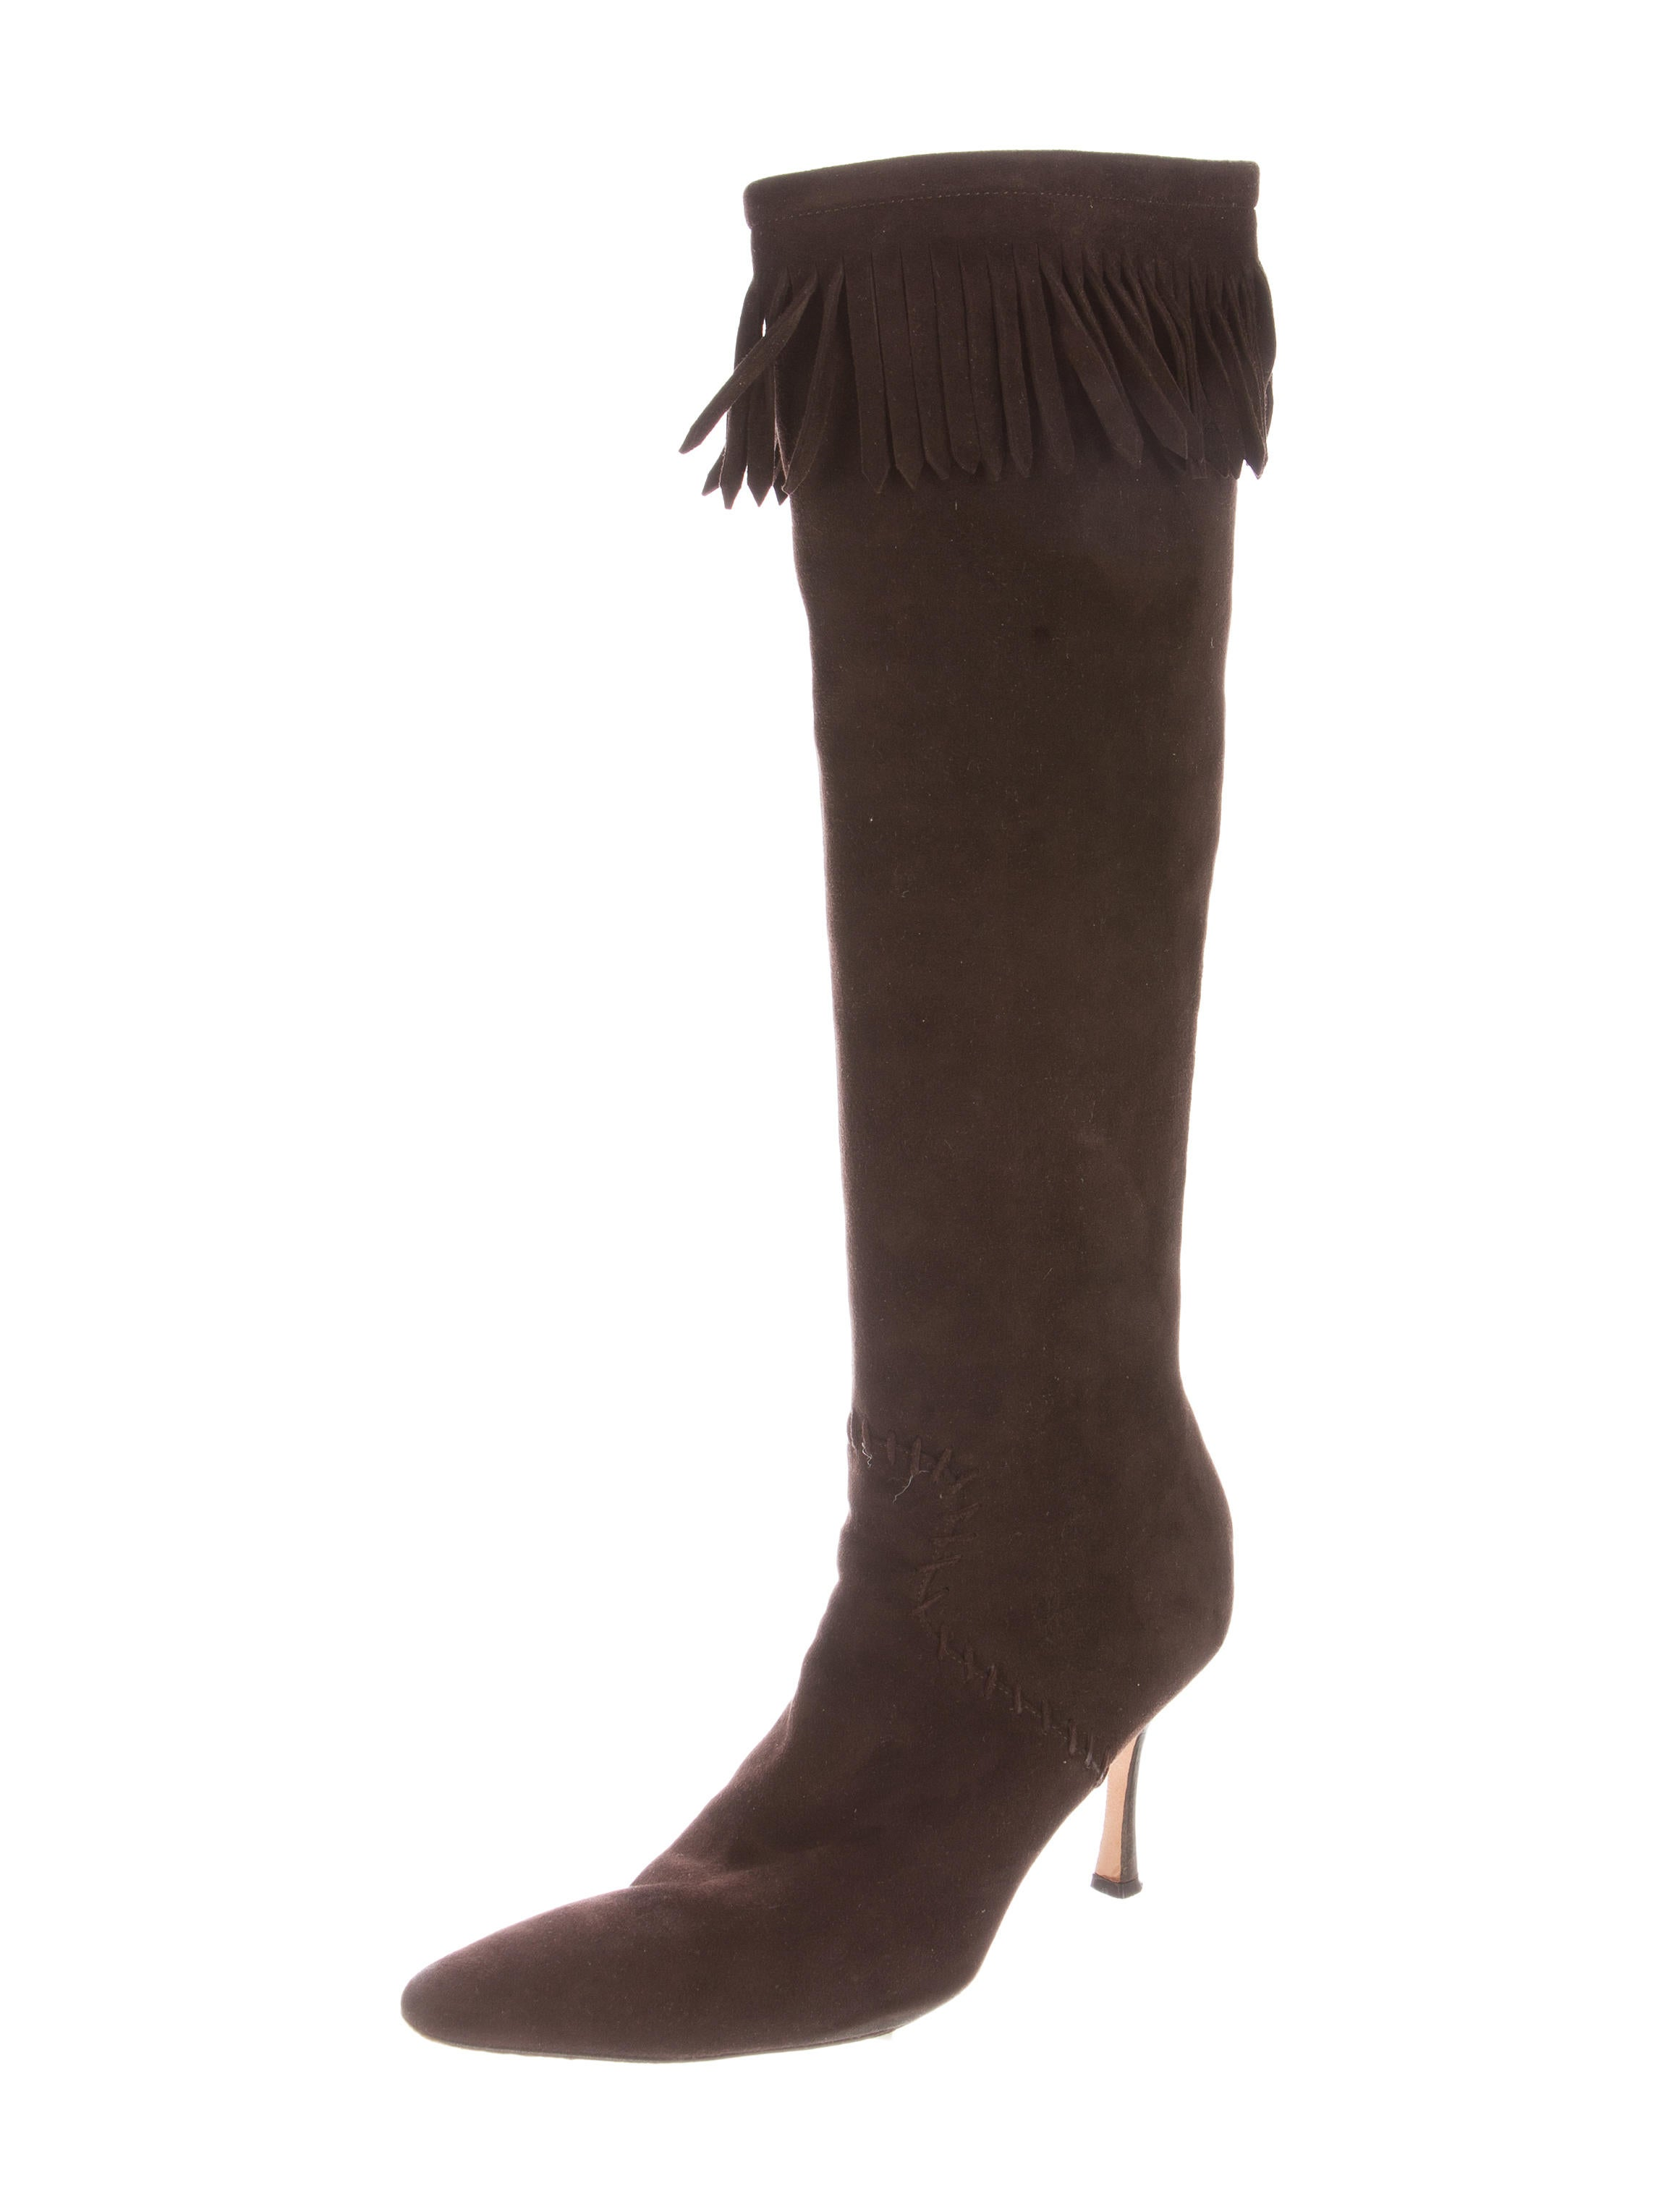 manolo blahnik fringe trimmed knee high boots shoes